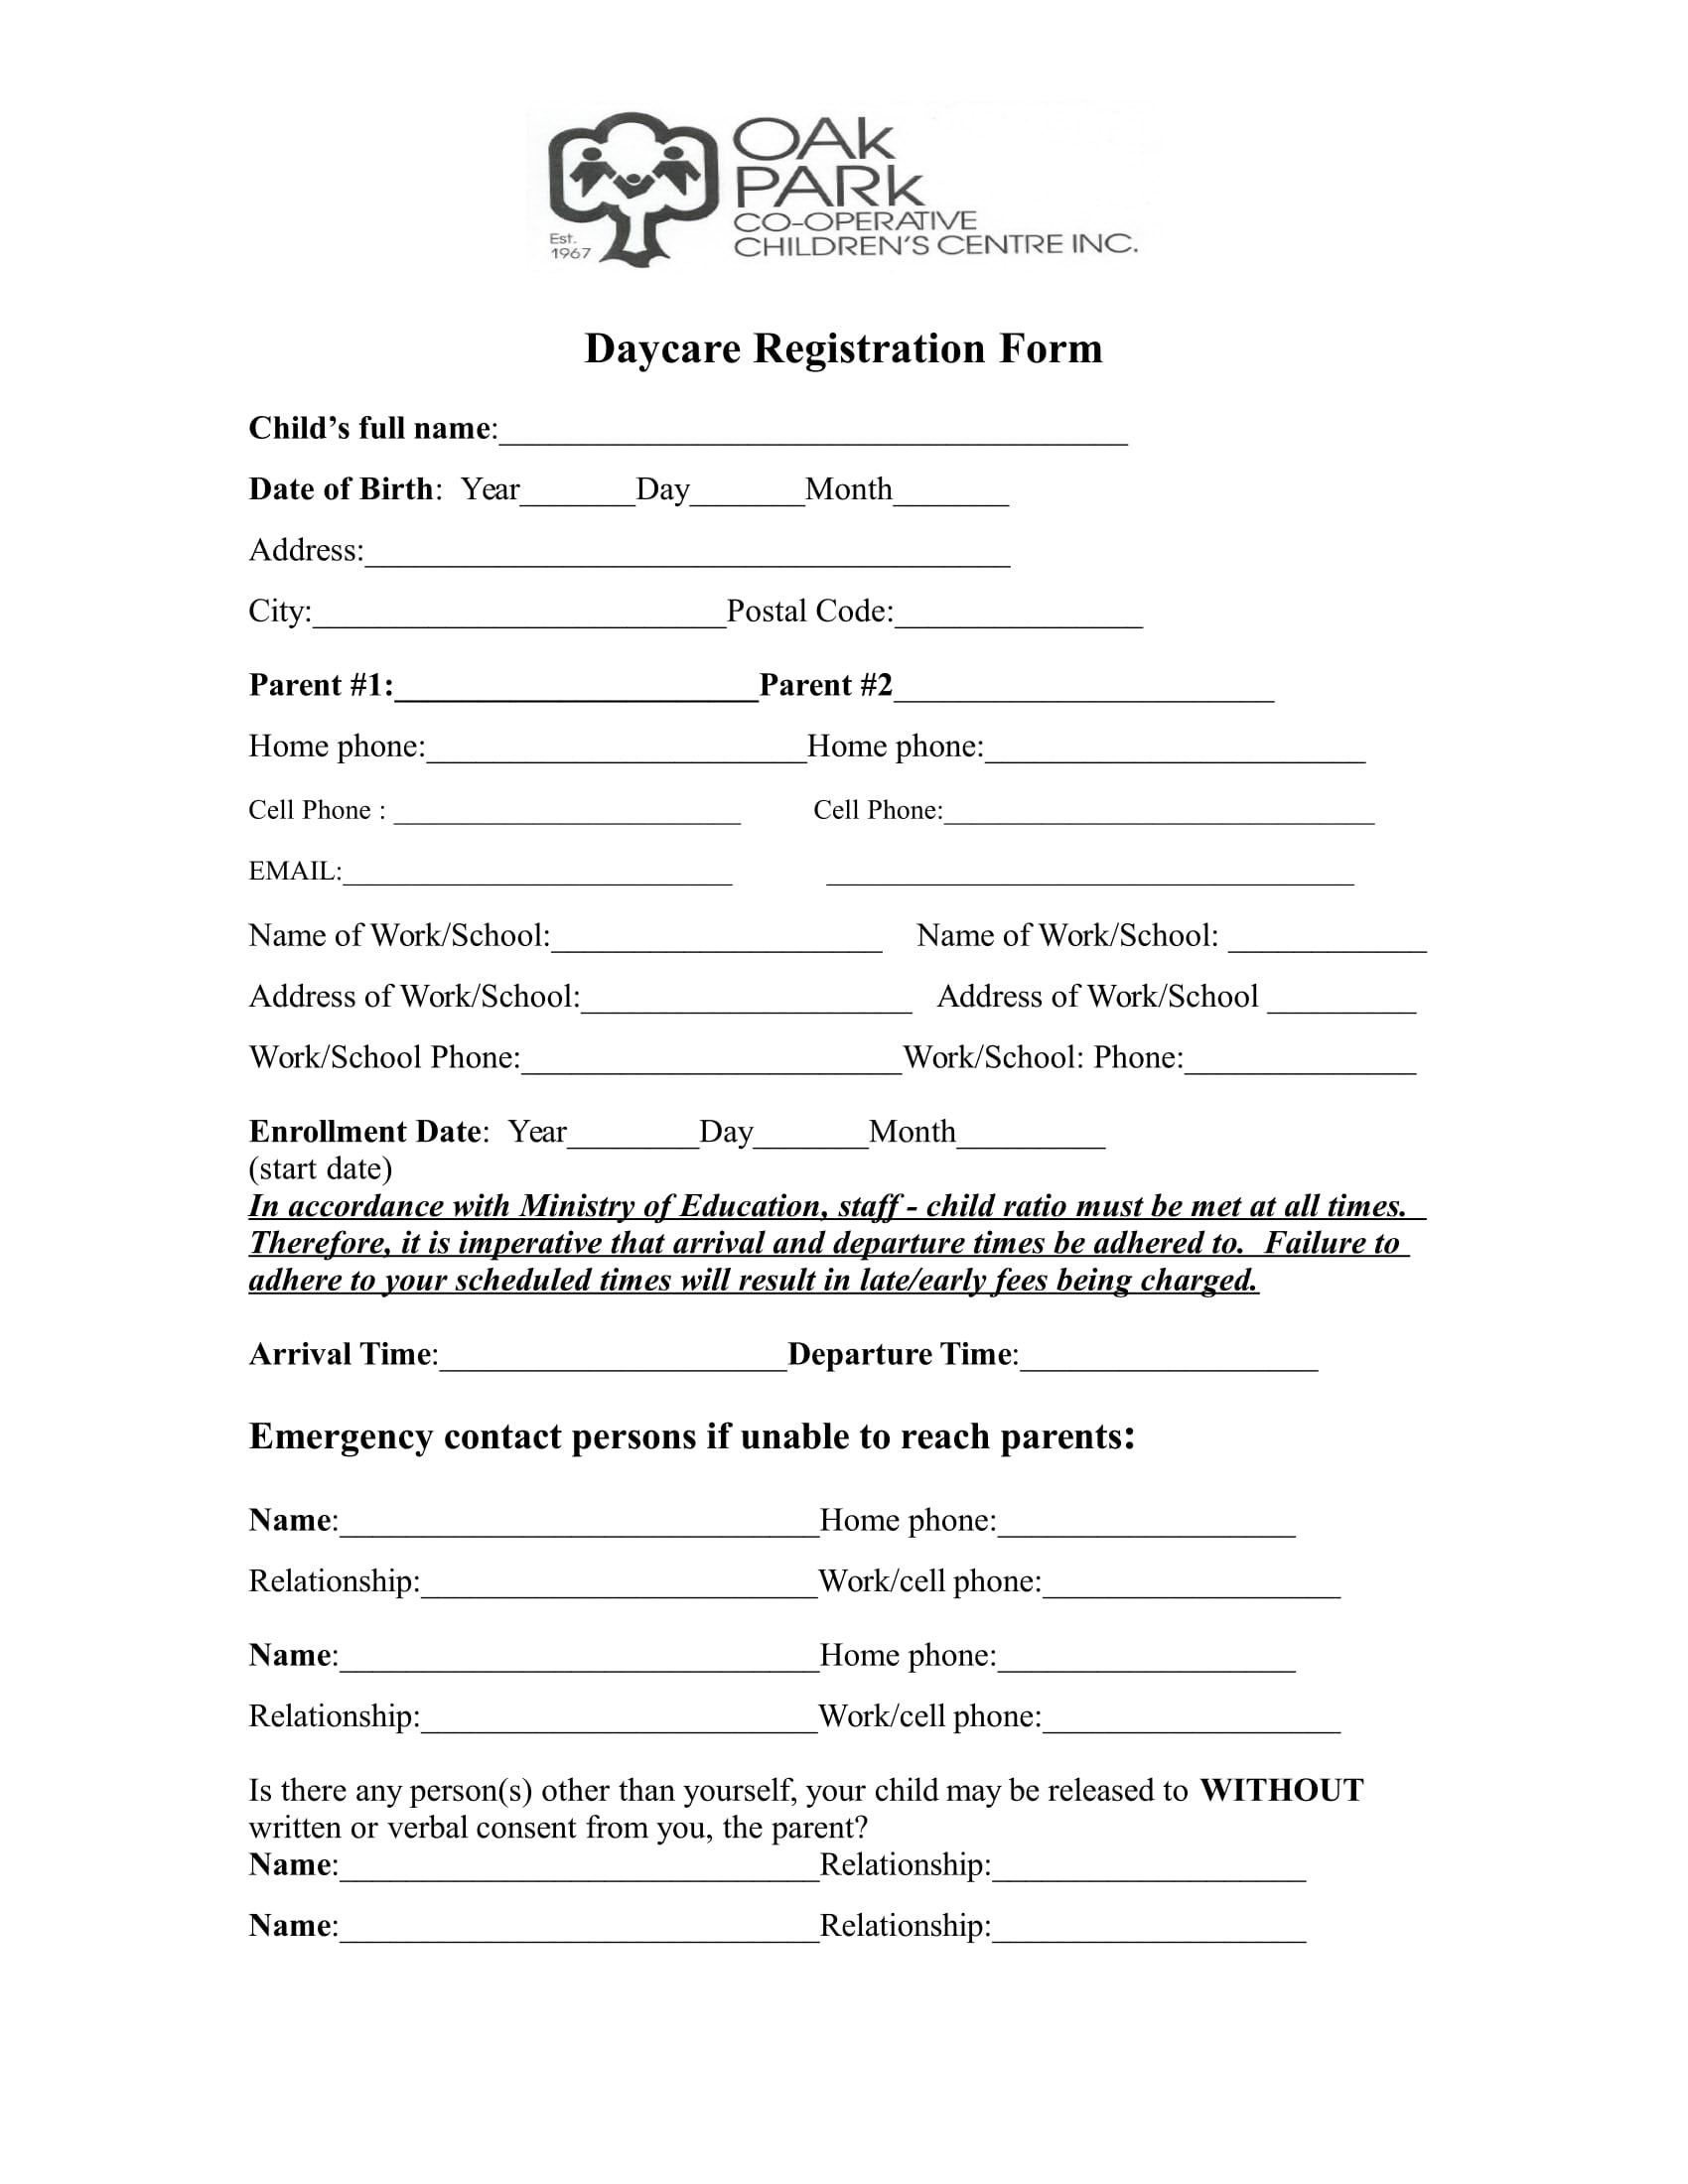 Daycare Registration Forms Free